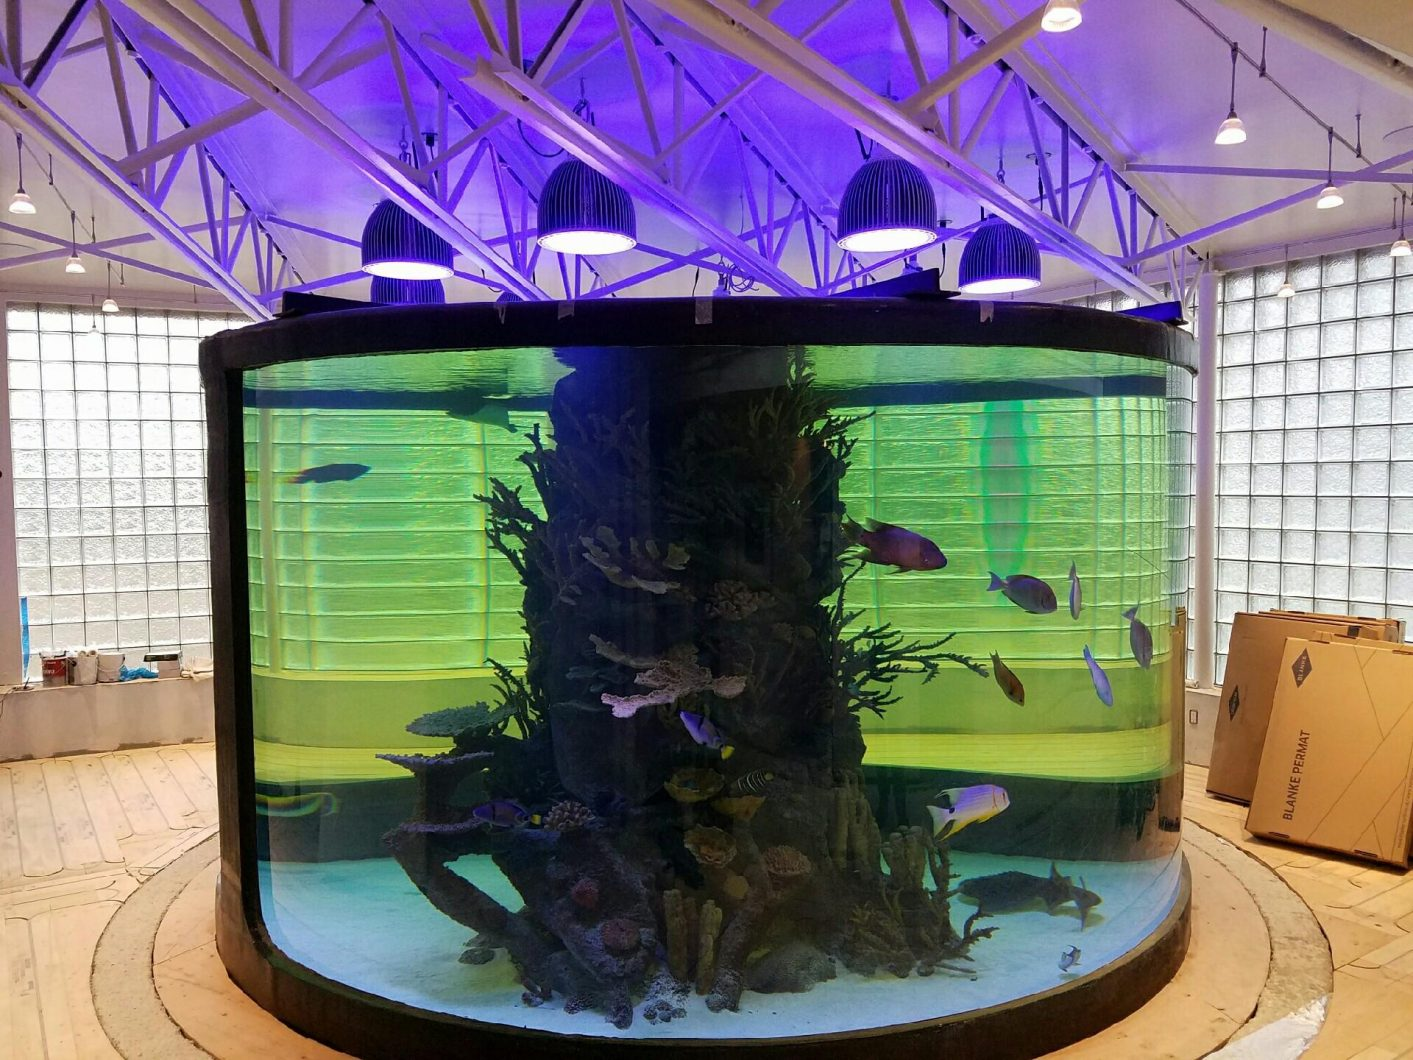 Éclairage d'aquarium à LED-Orphek